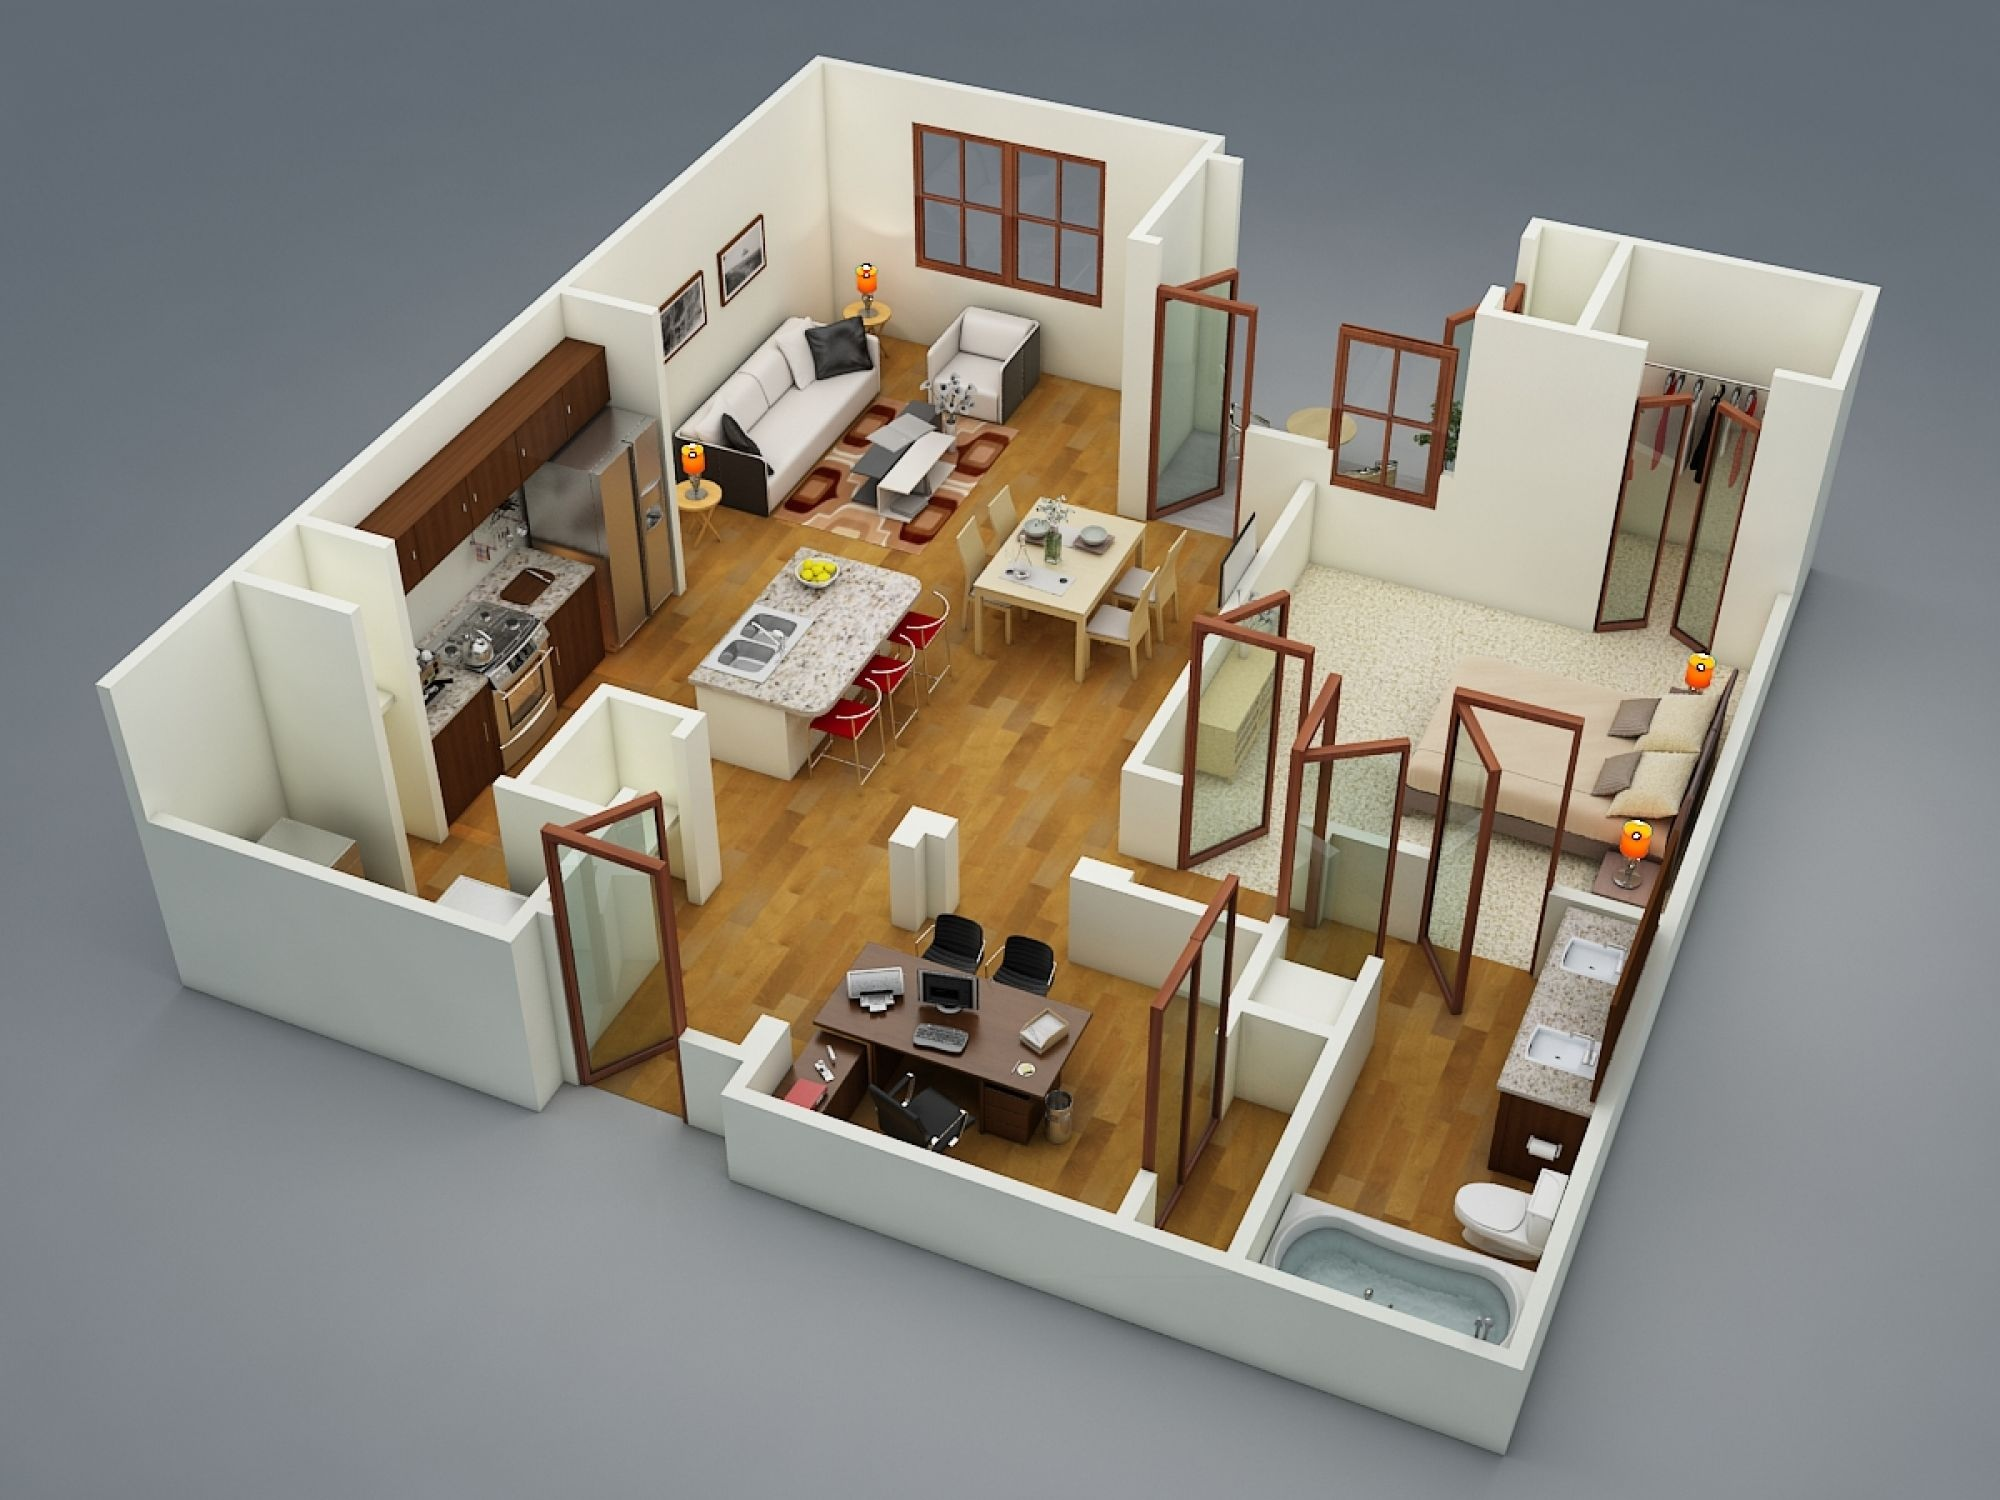 Apartment Plans 1 bedroom apartment/house plans